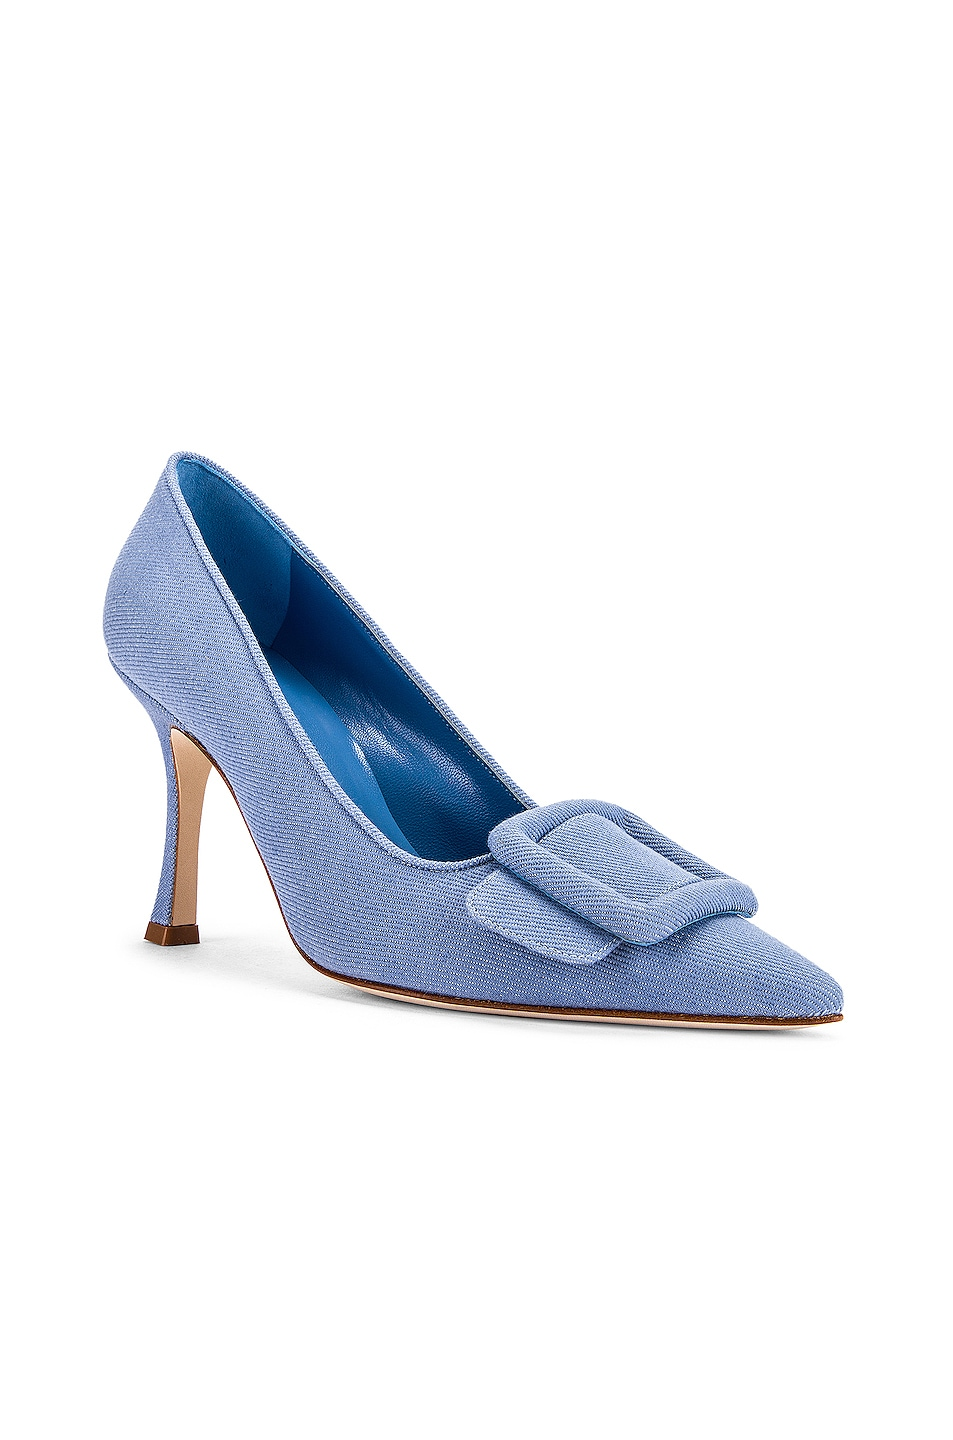 Image 2 of Manolo Blahnik Maysale 90 Pump in Light Blue Jean